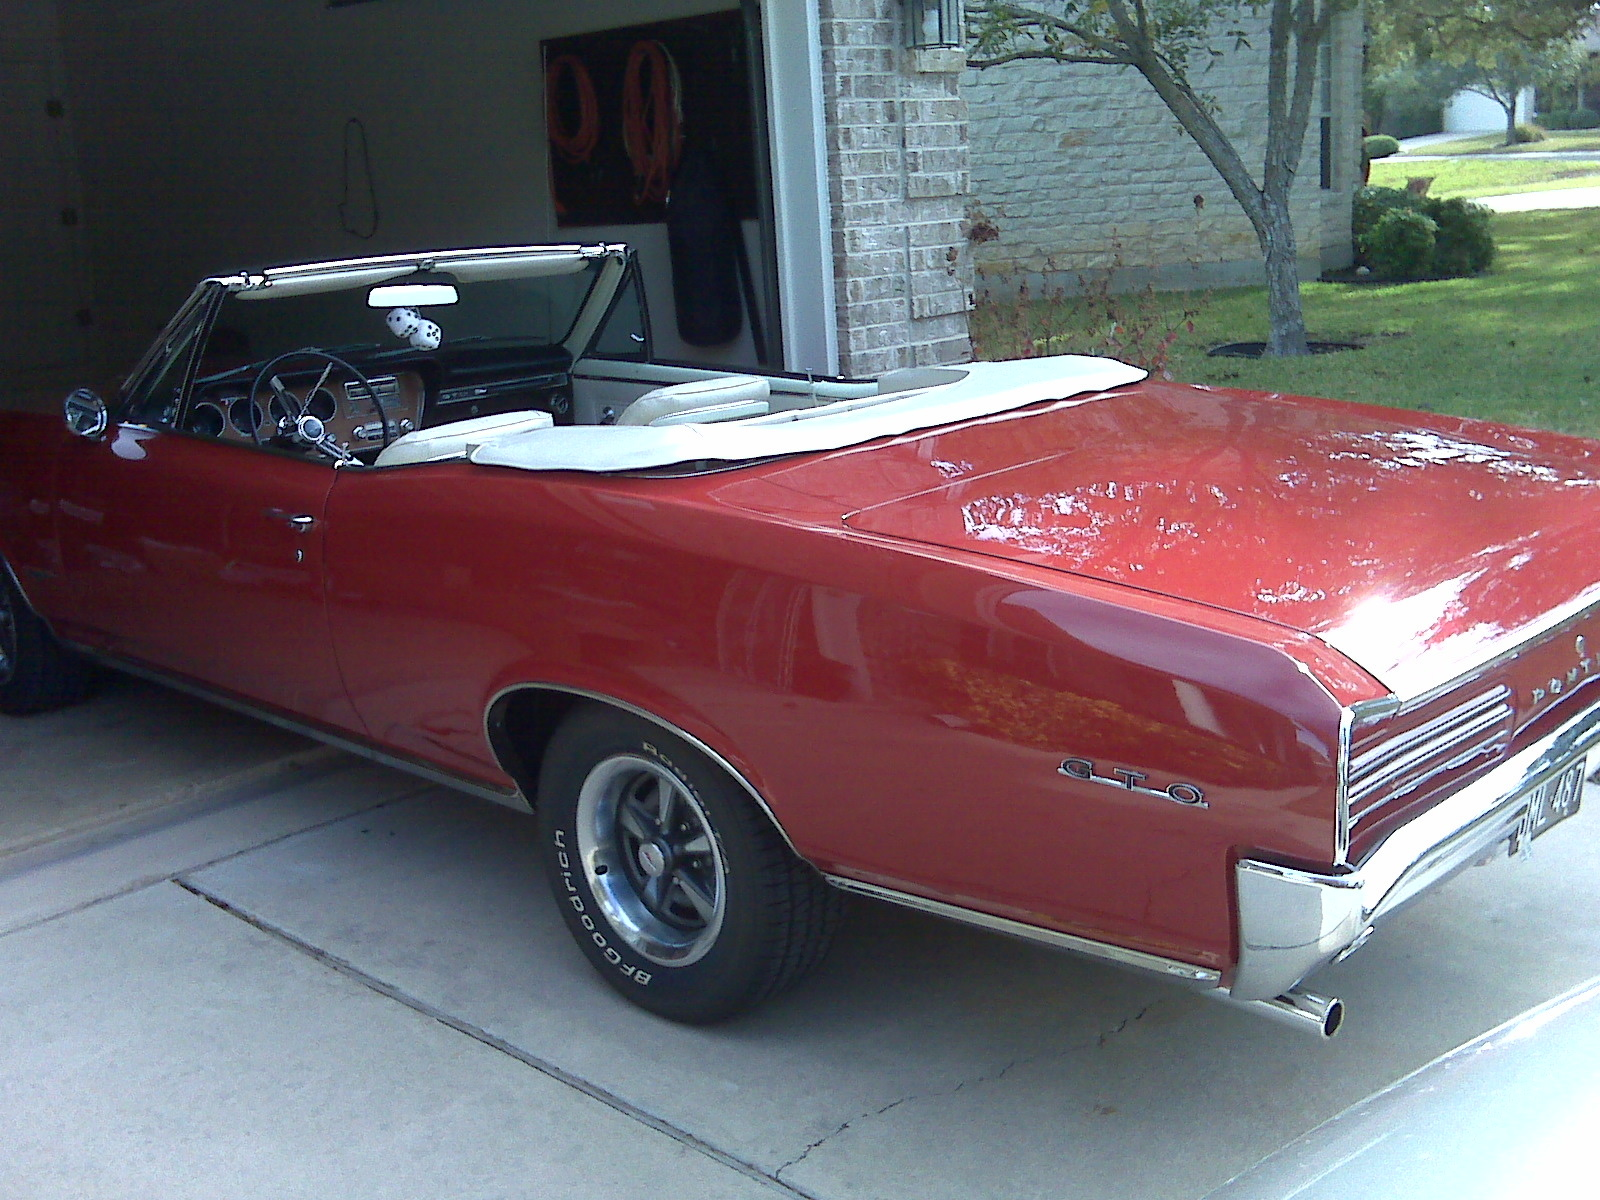 Pontiac GTO Questions - HOW MANY 1966 GTO'S WERE BUILT WITH THE GEAR